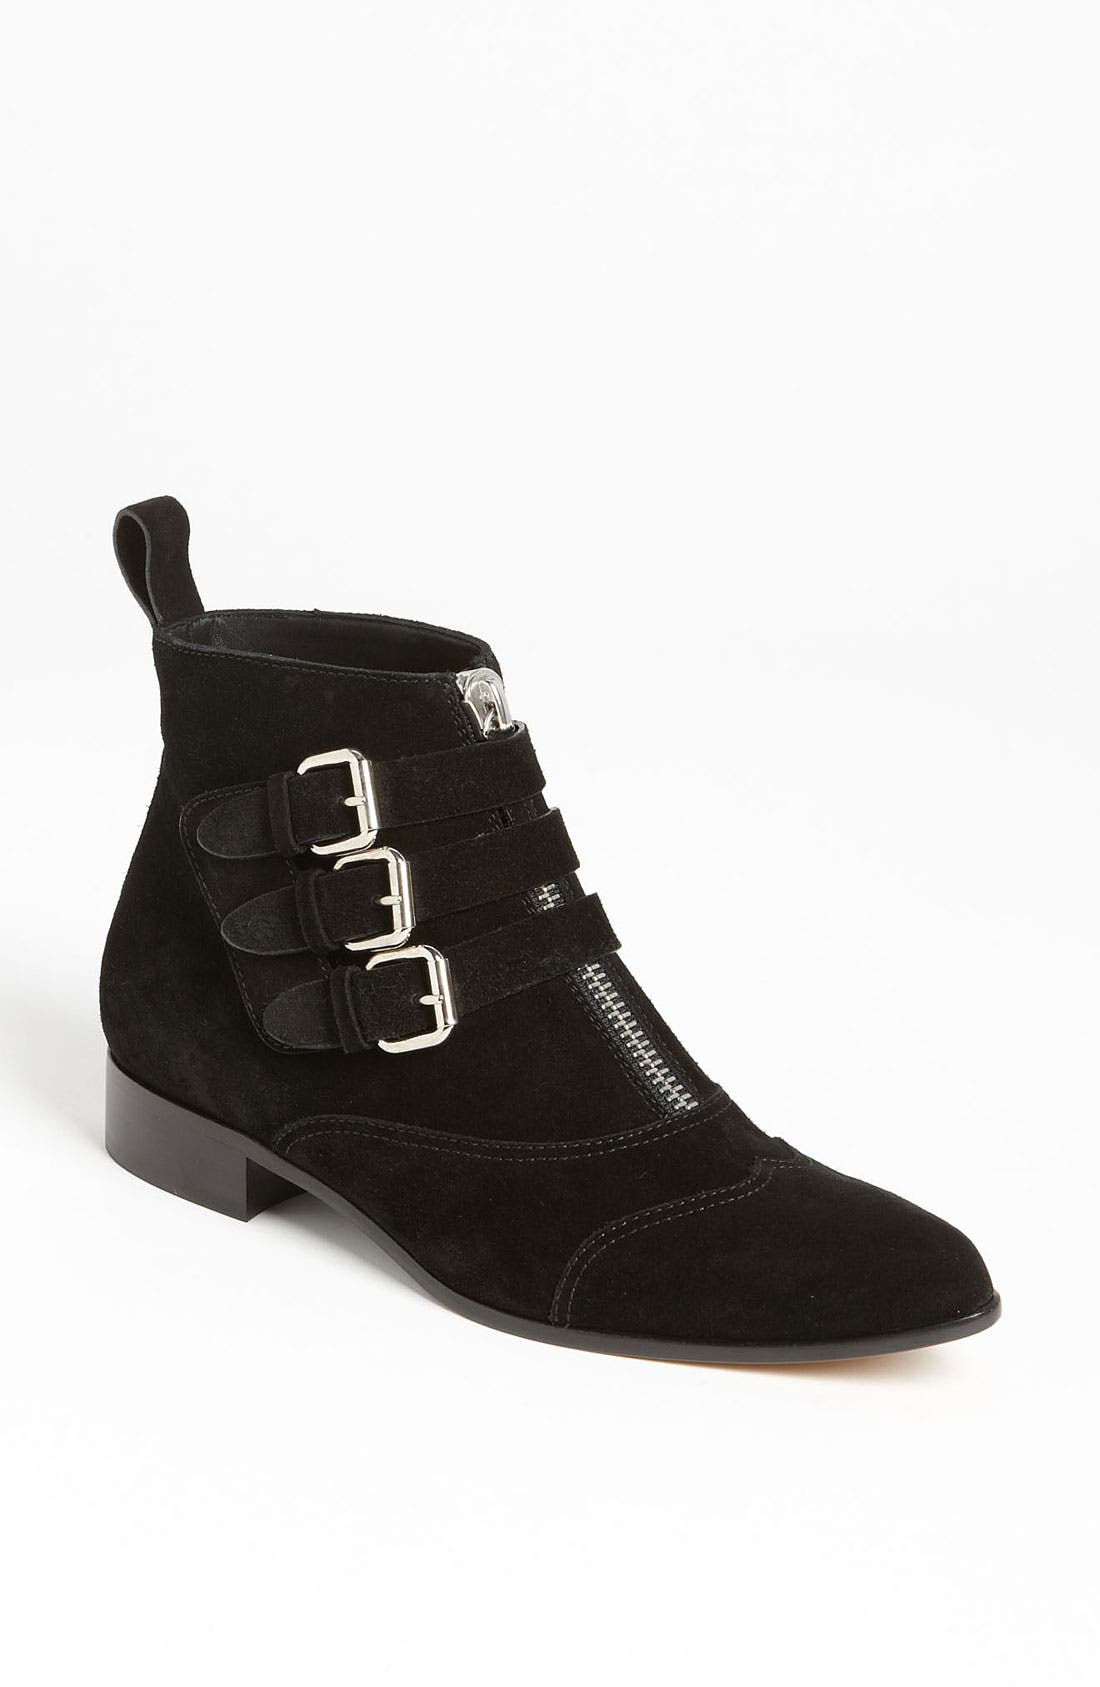 Alternate Image 1 Selected - Tabitha Simmons Zip Buckle Bootie